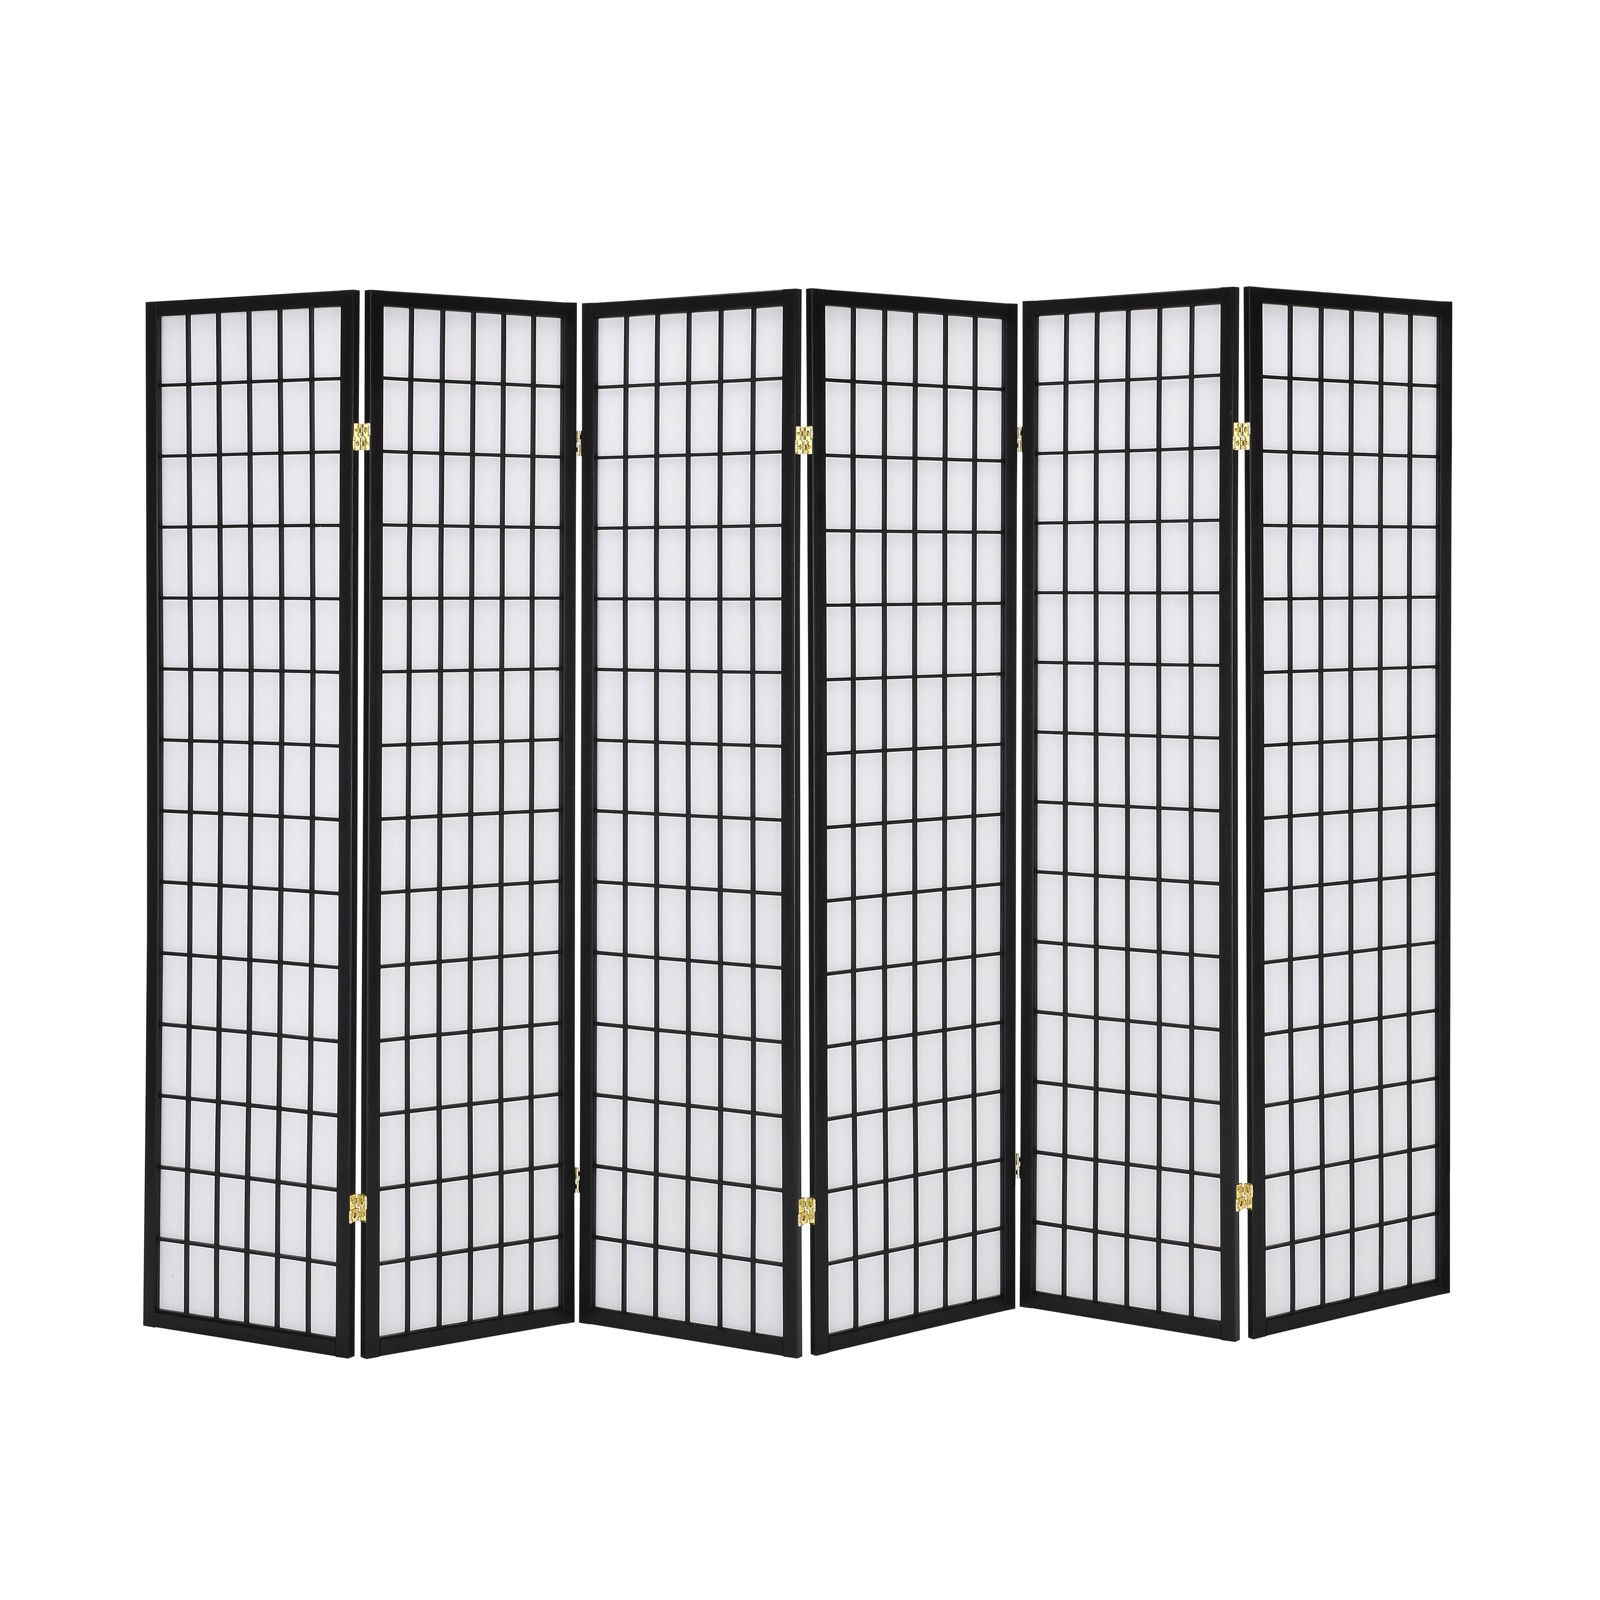 Stupendous Solid Timber Wooden 6 Panel Fold Screen Room Divider Black Download Free Architecture Designs Embacsunscenecom